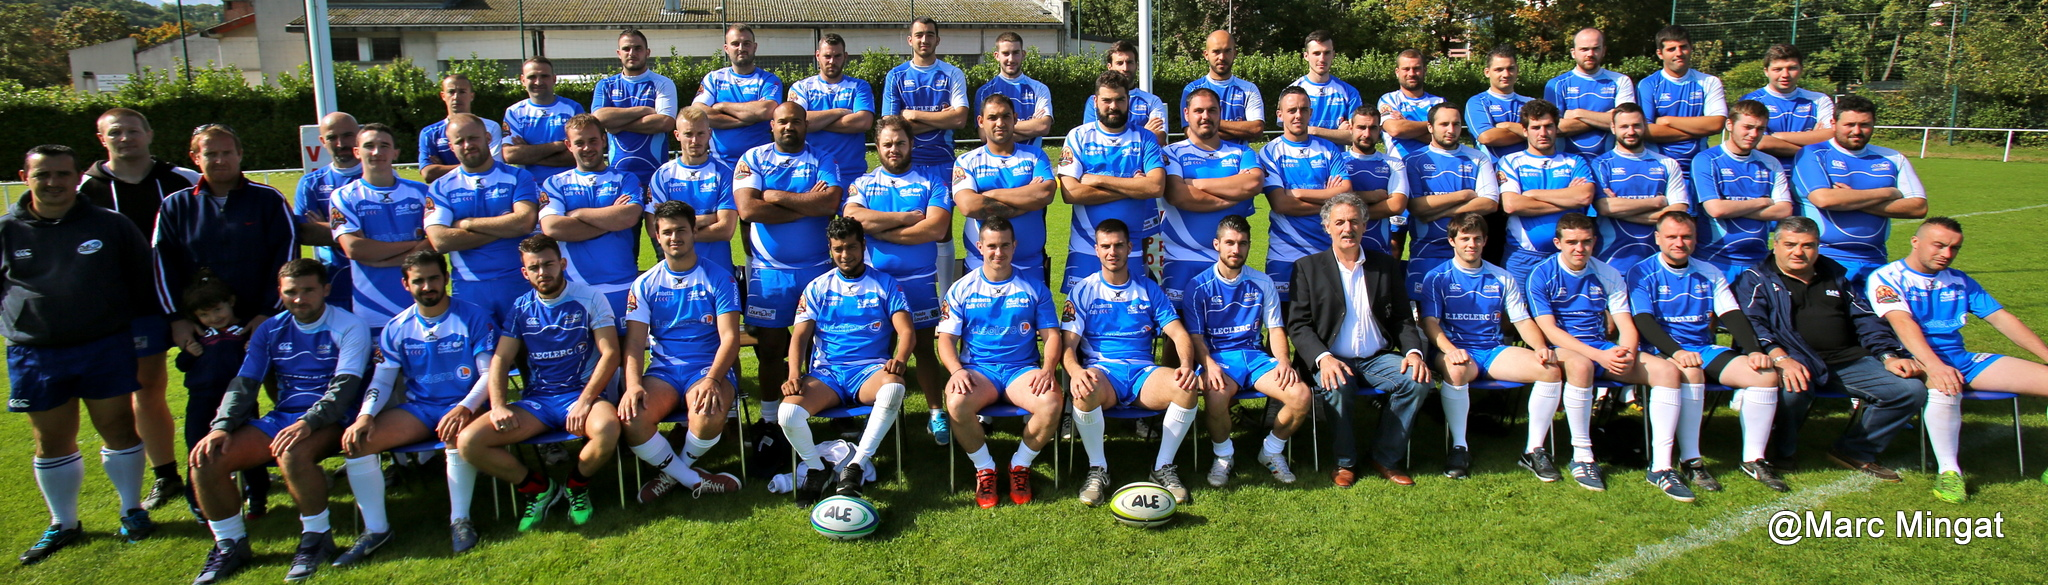 SENIORS: GRENOBLE UNIVERSITE CLUB - ALE RUGBY